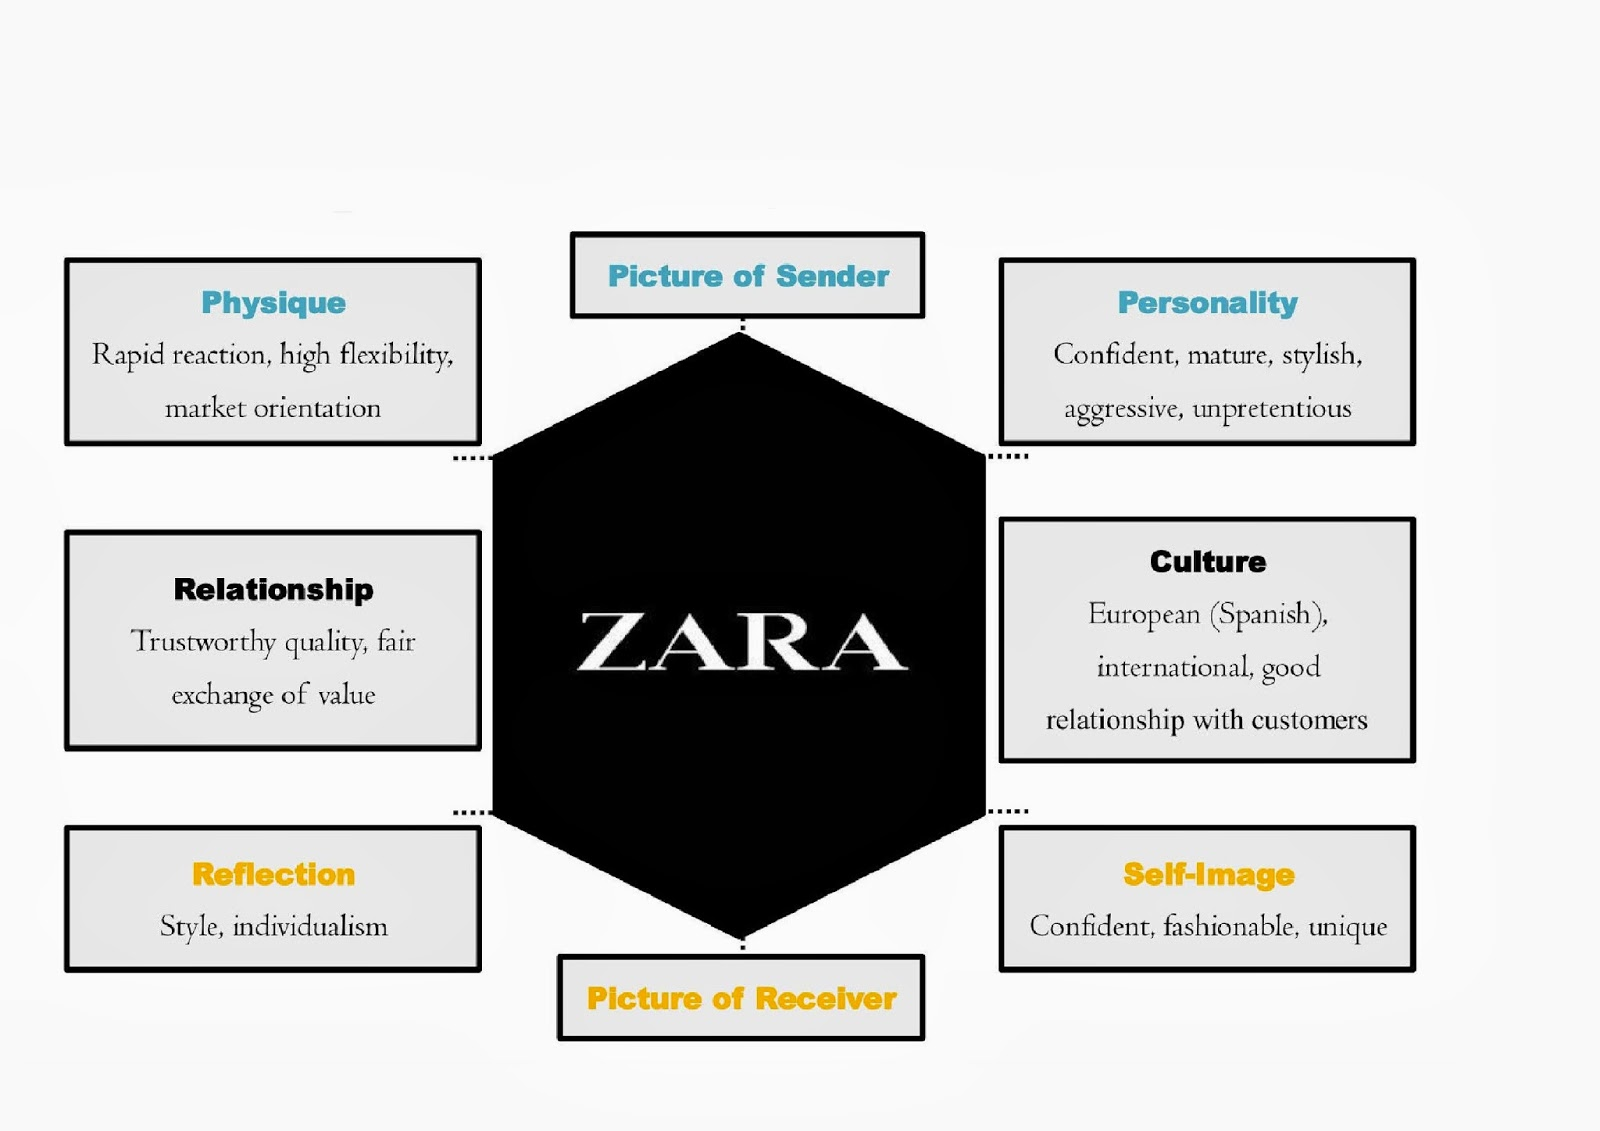 zara case study analysis zara segmentation by best custom paper  brand identity prism for zara marketing assignment brand identity prism for zara marketing assignment models zara